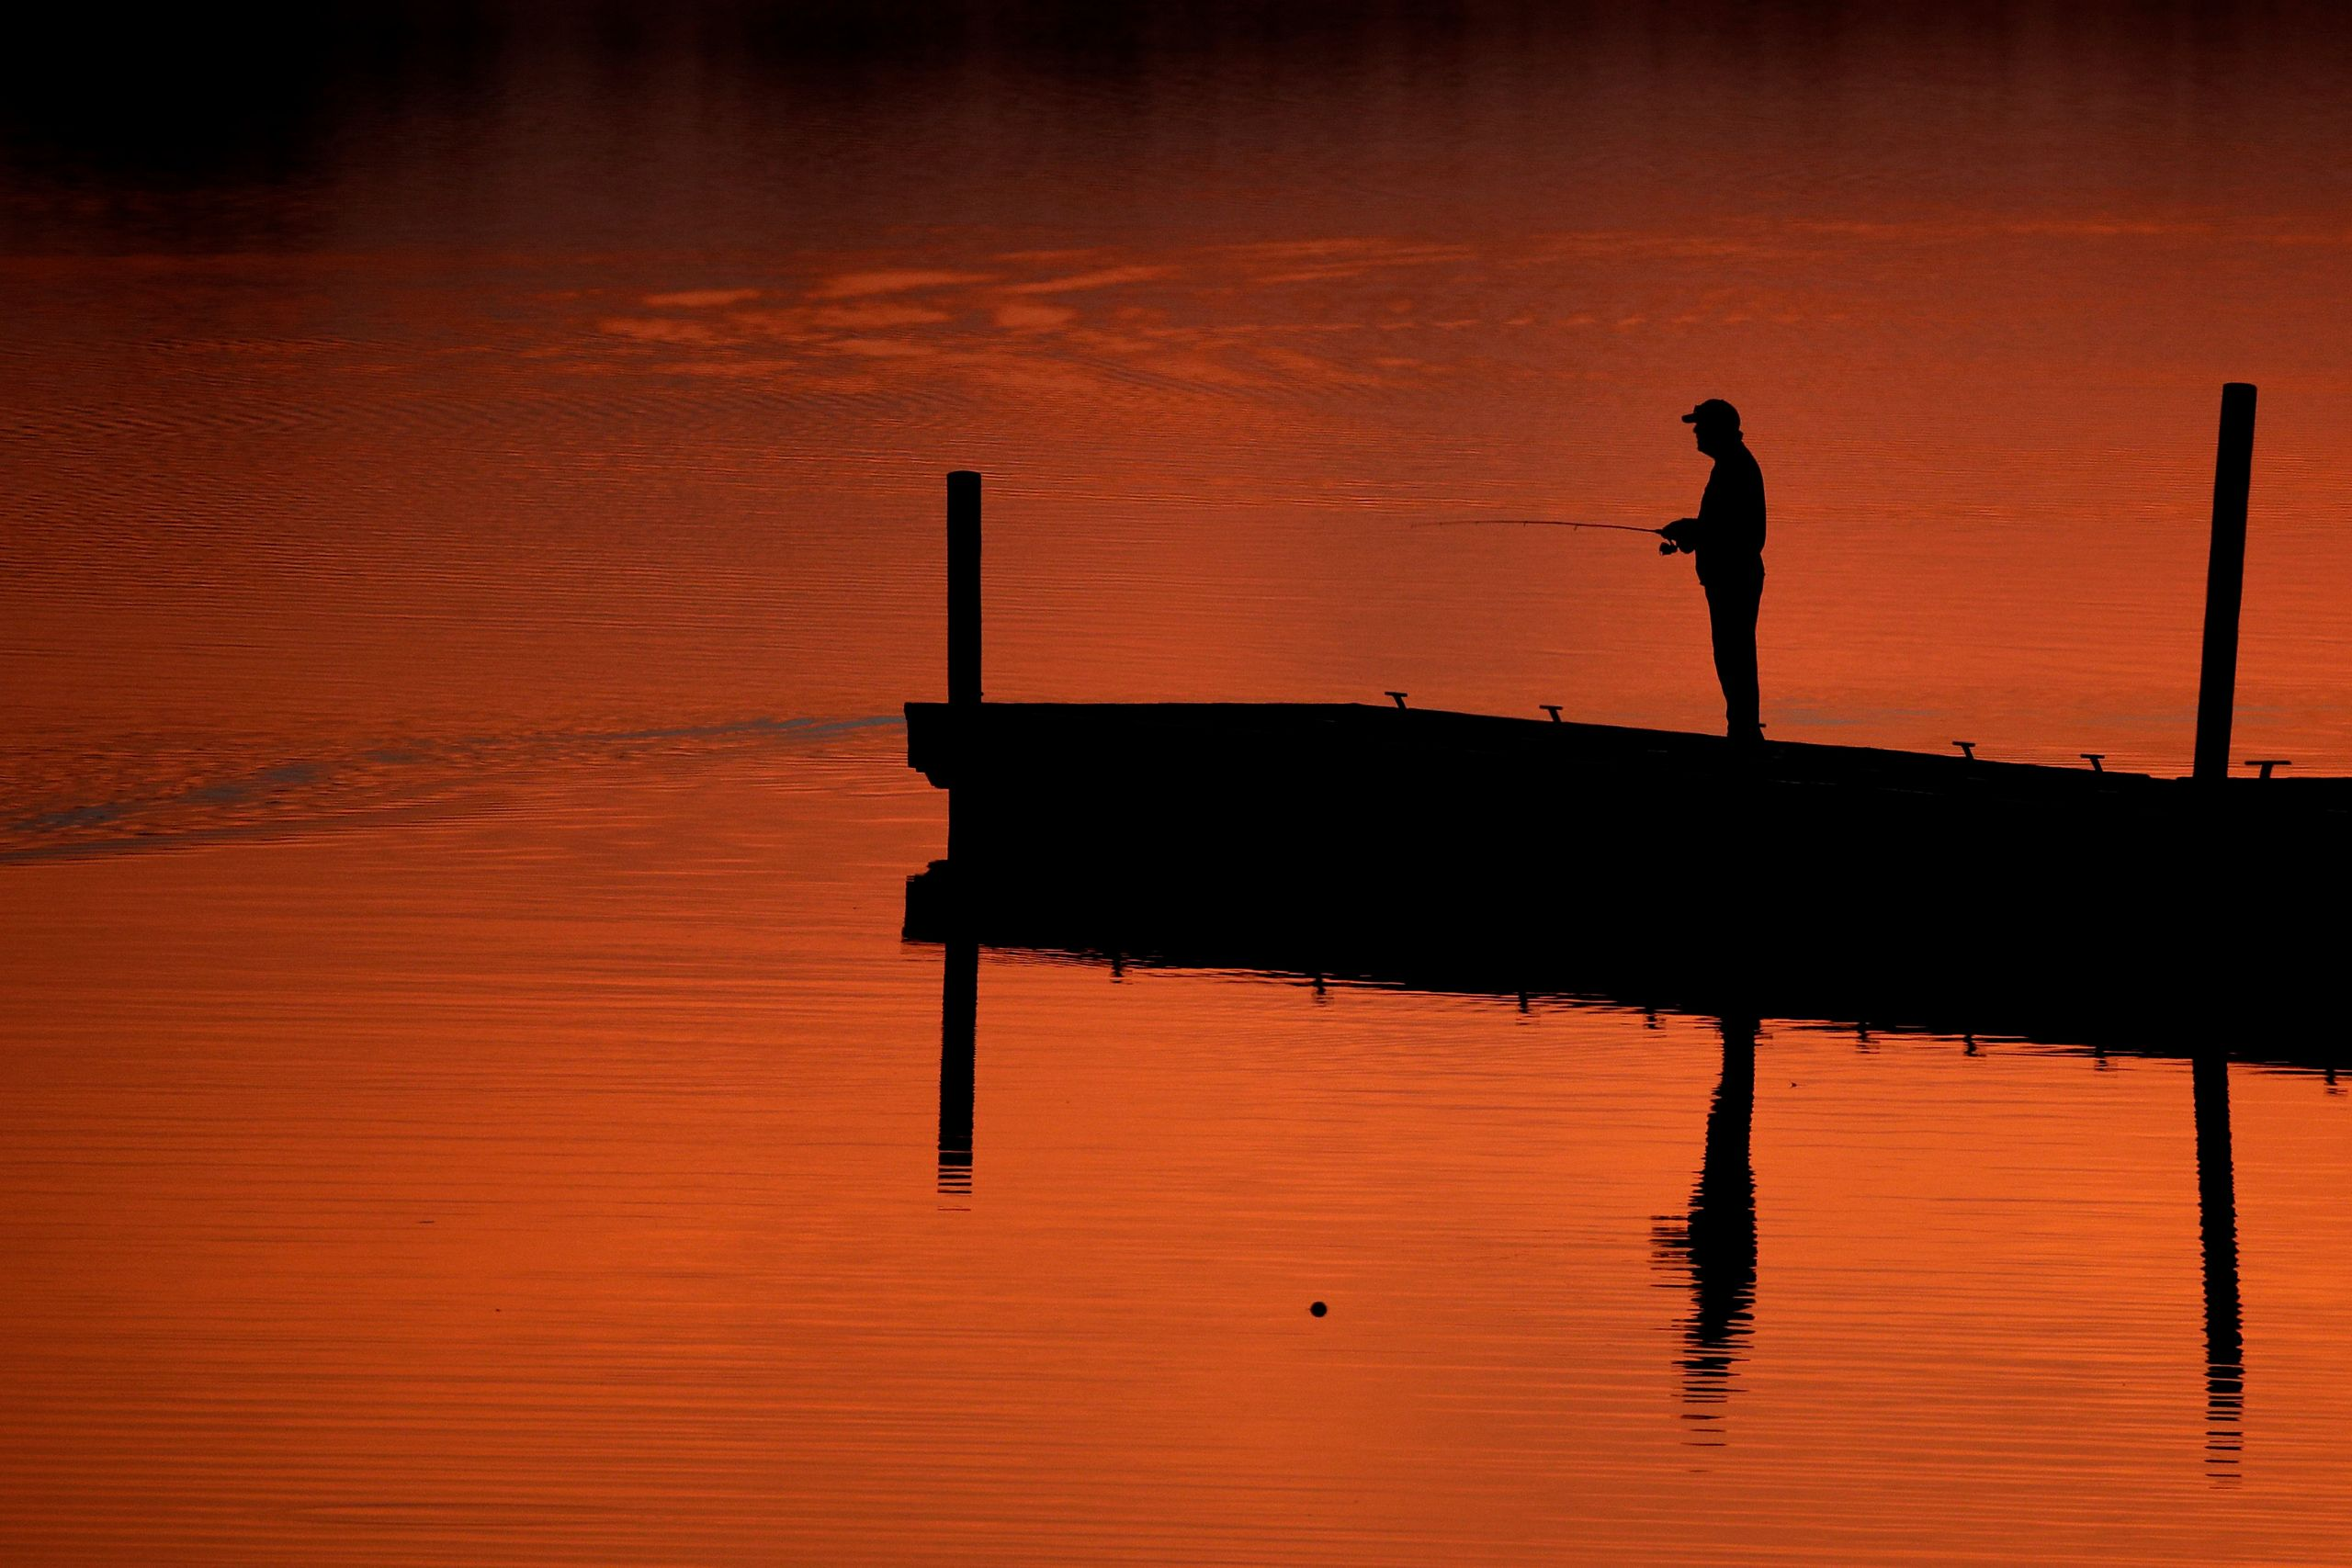 A man fishes on a dock at Shawnee Mission Park in Lenexa, Kansas, on March 11, 2019.